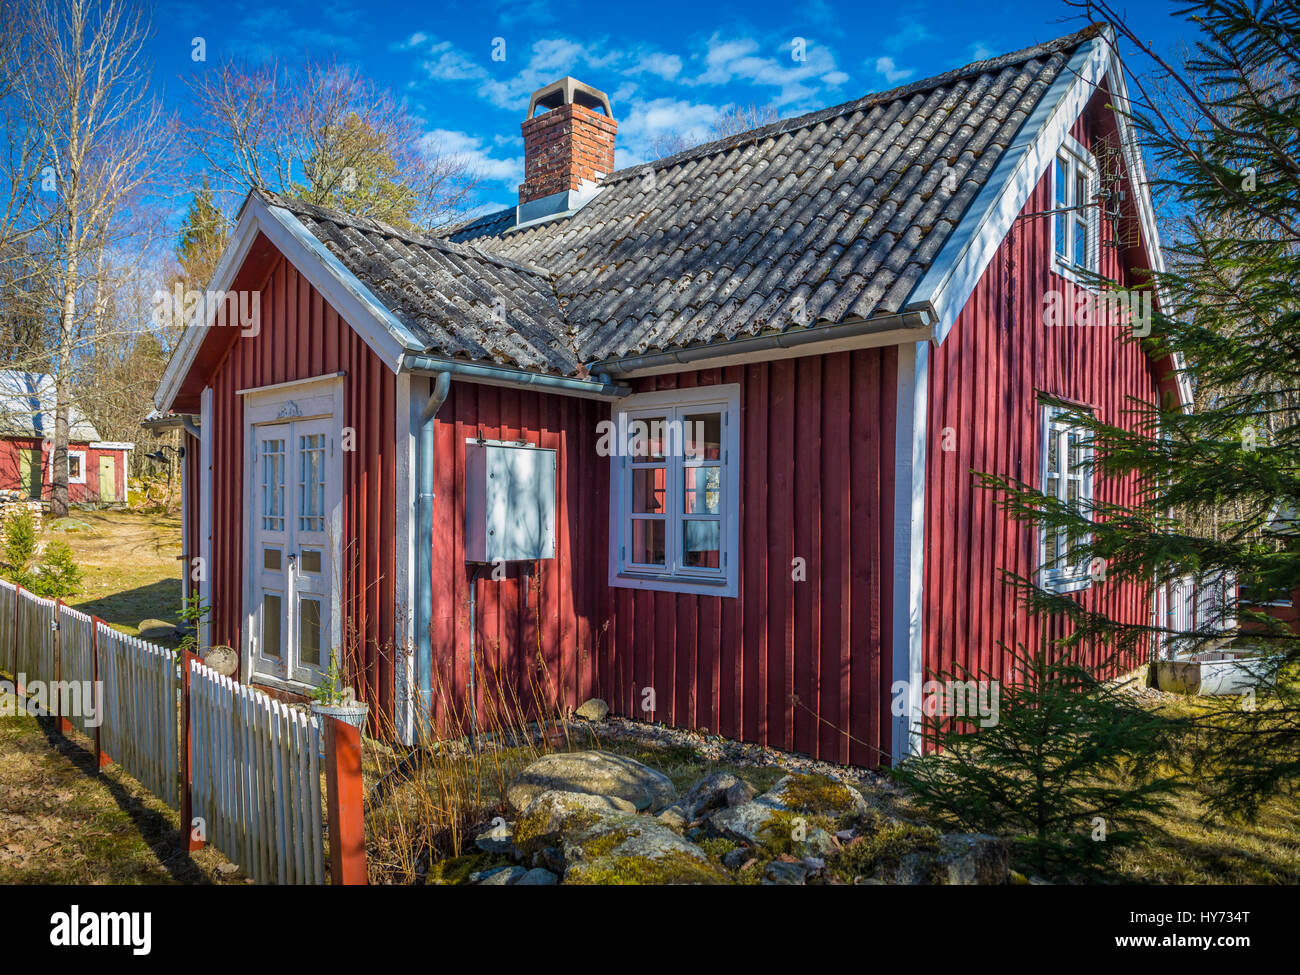 Cottage in the southern province of Blekinge in Sweden, near Kyrkhult. - Stock Image